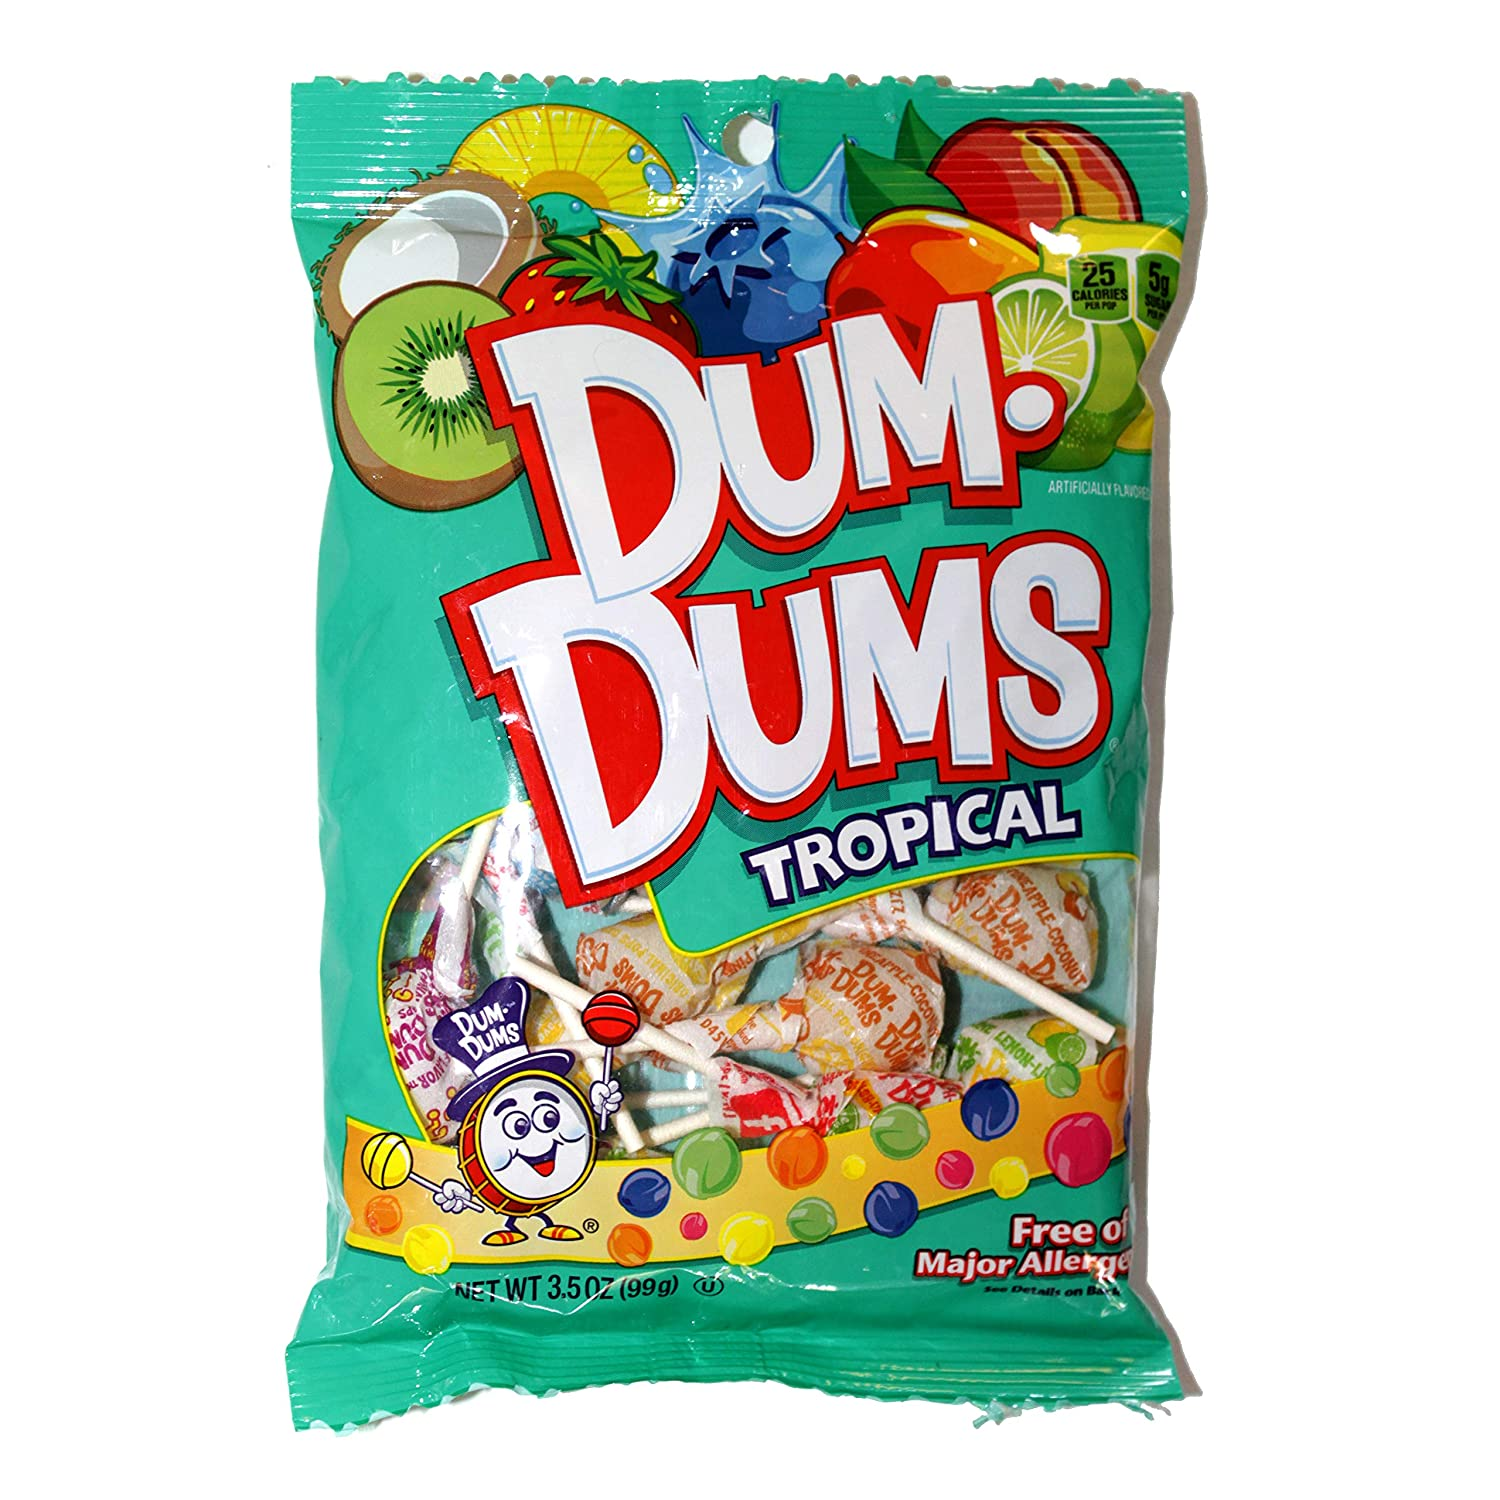 Dum Dums Lollipops, Tropical, 3.5oz